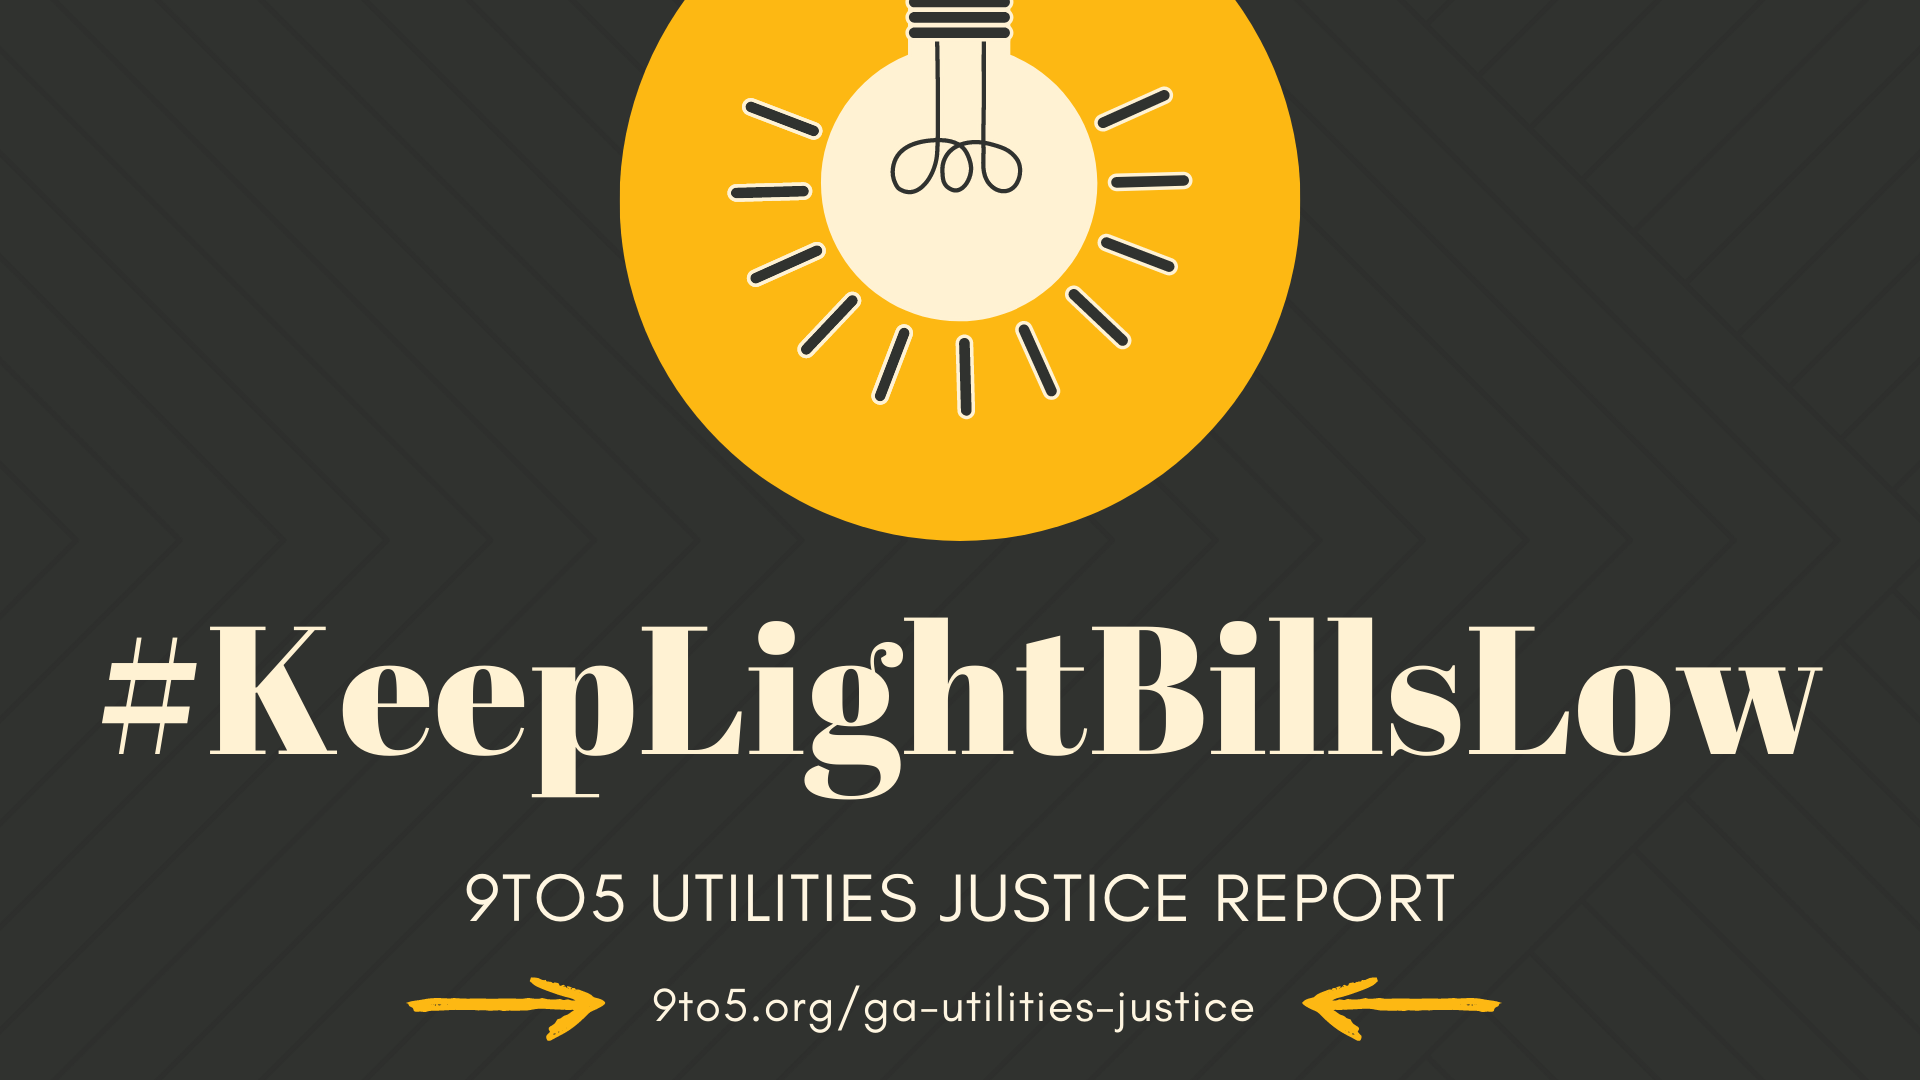 Utilities Justice in Albany